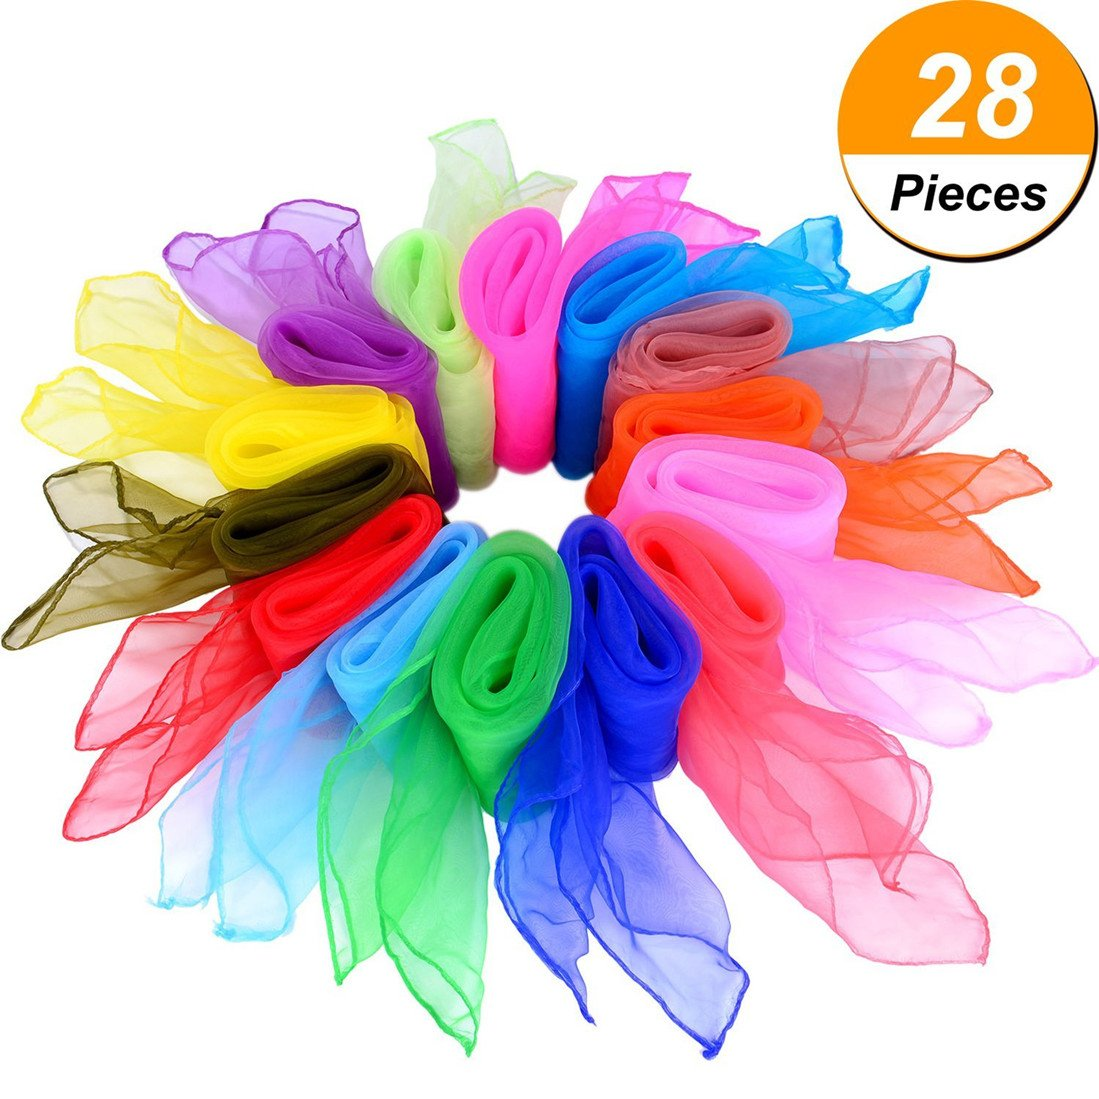 ALIKSO Dance Scarves 28pcs Rhythm Scarves Square Dance Scarf Juggling Scarf Magic Scarves for Kids 24 by 24 Inches 14 Colors (28pcs 14 Colors)